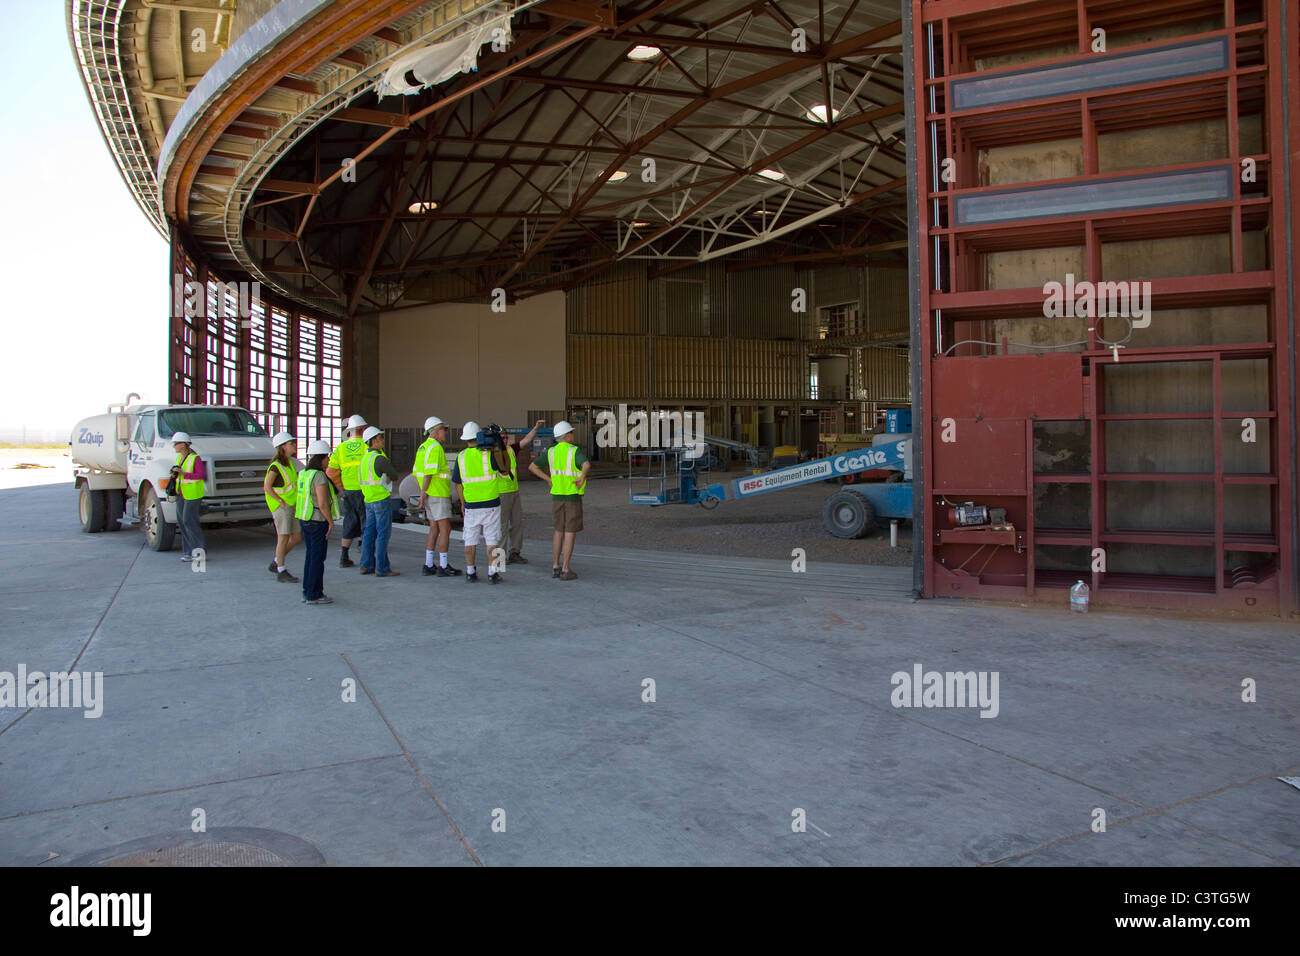 Spaceport America, Virgin Galactic Terminal Hangar Facility, near Truth or Consequences, NM - Stock Image